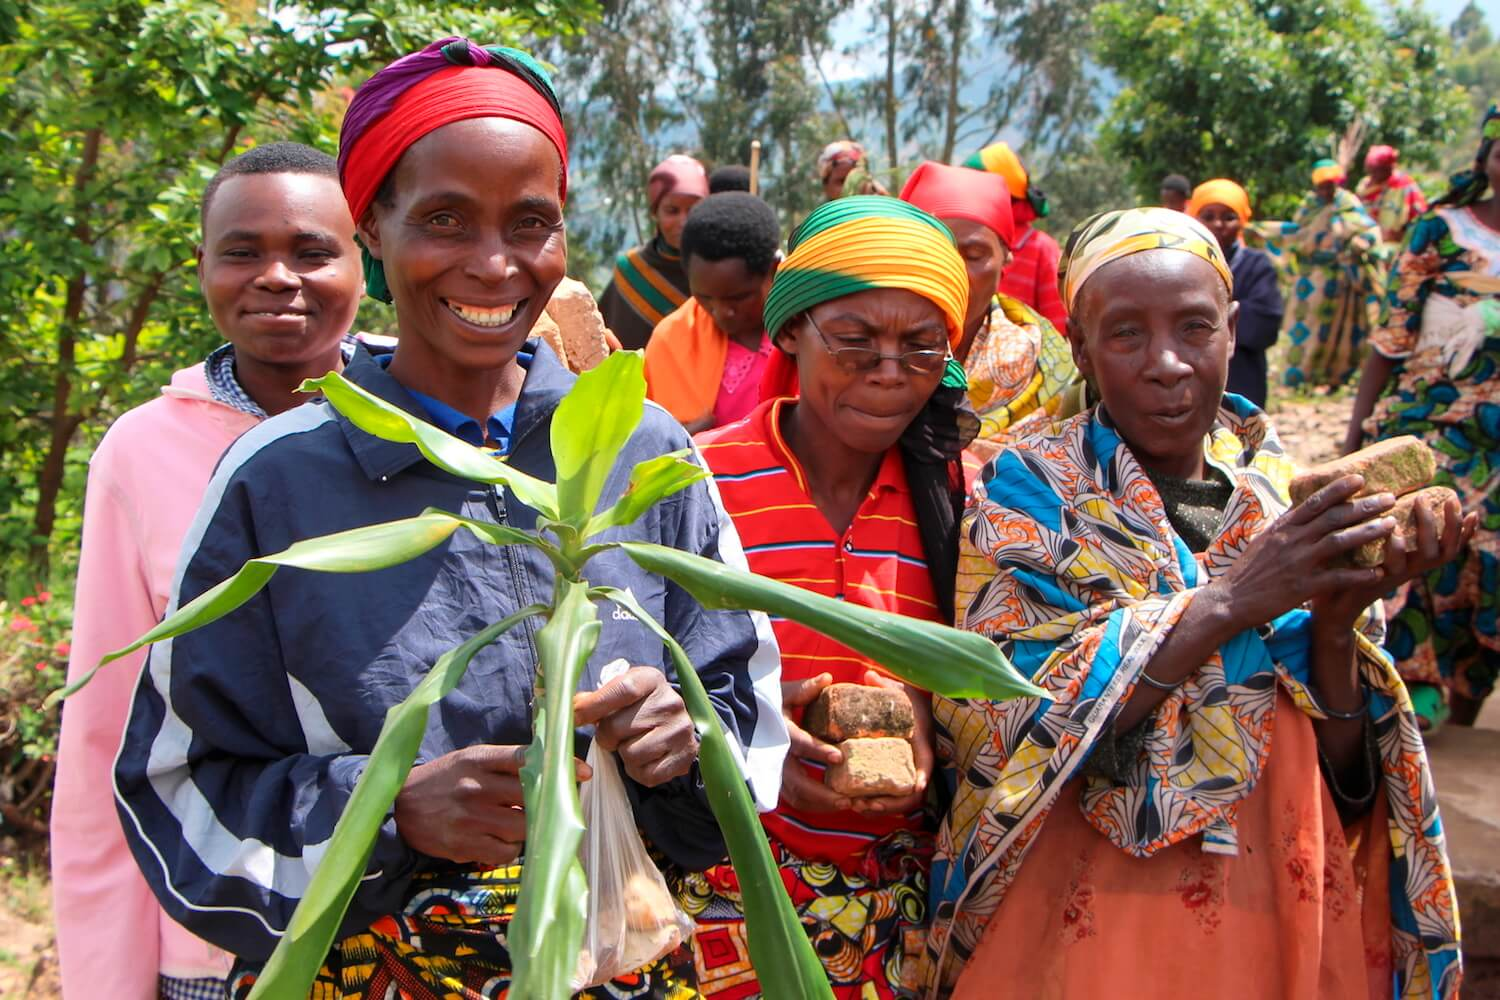 A few women, and one man, in brightly colored clothing. Woman in front is holding plant and smiling at camera.